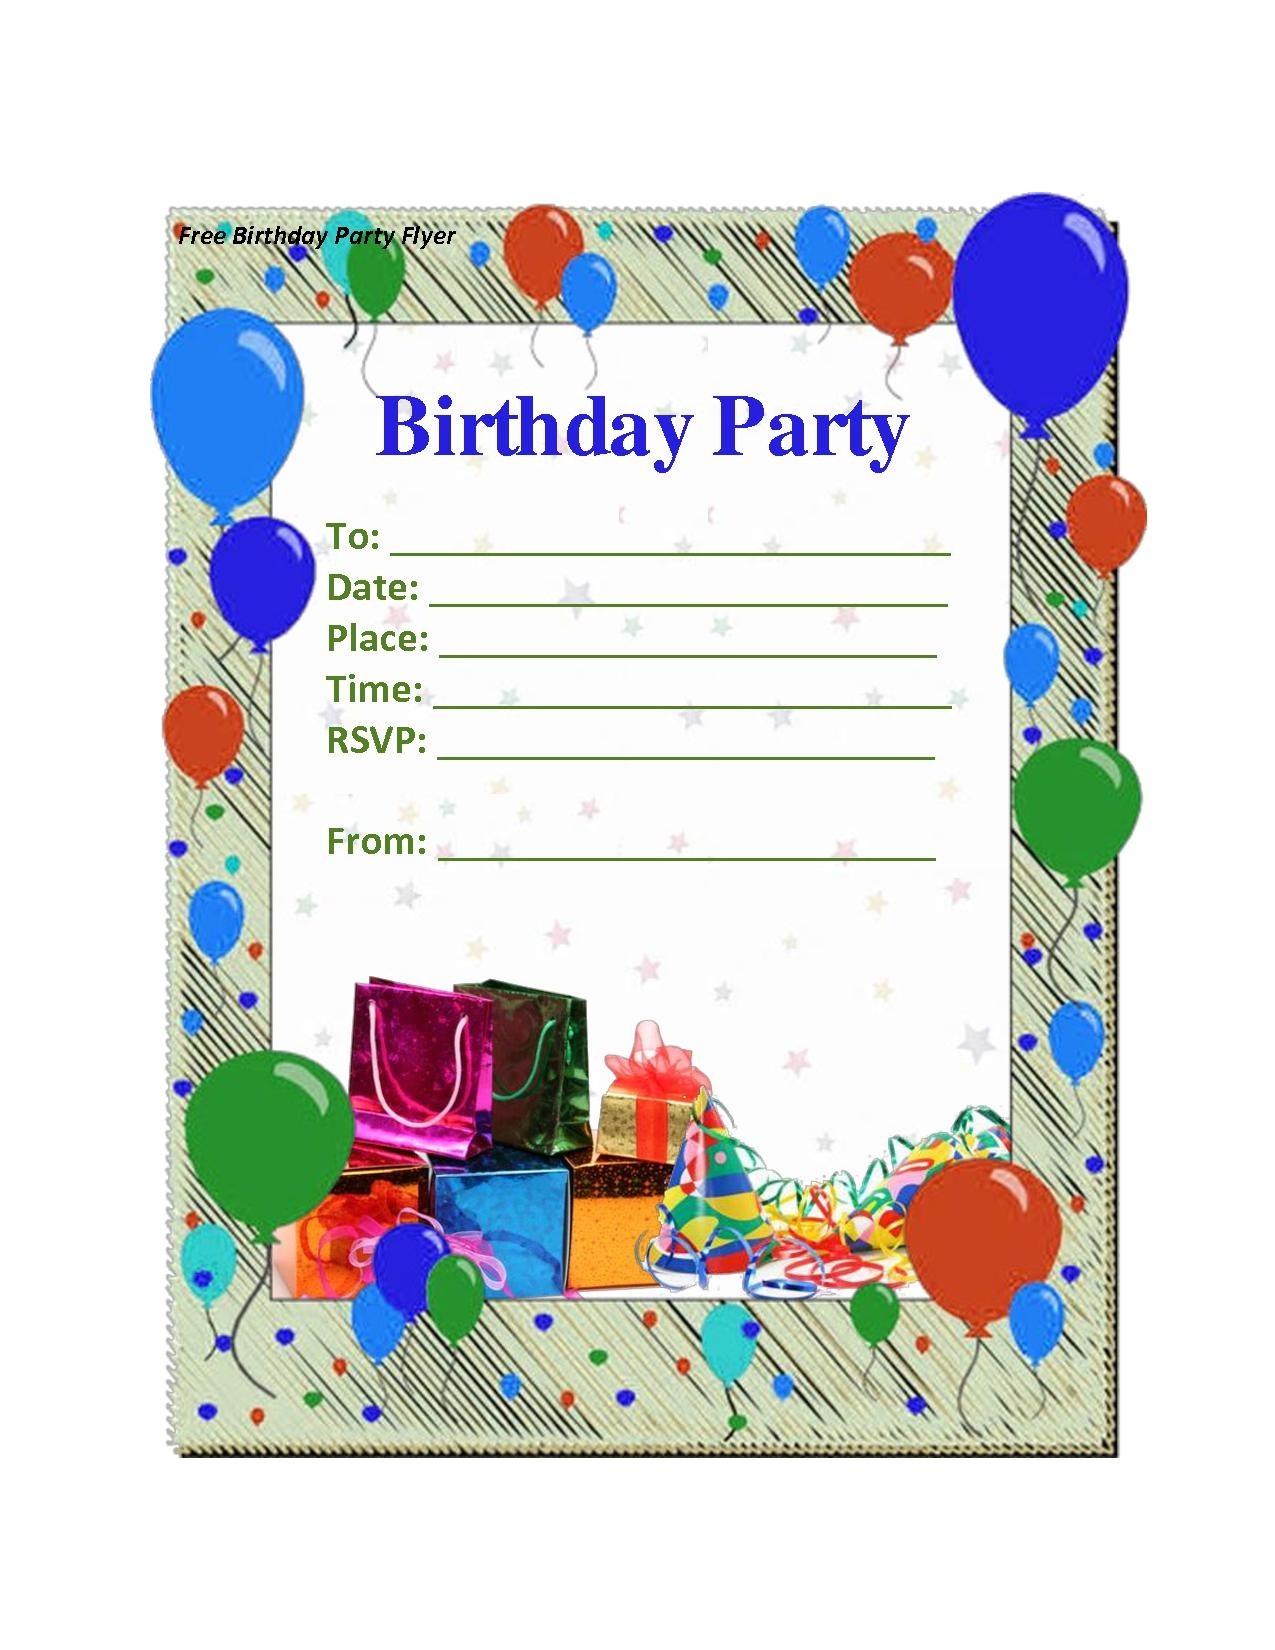 Birthday Party Invitation Maker Free — Birthday Invitation Examples - Invitation Creator Free Printable